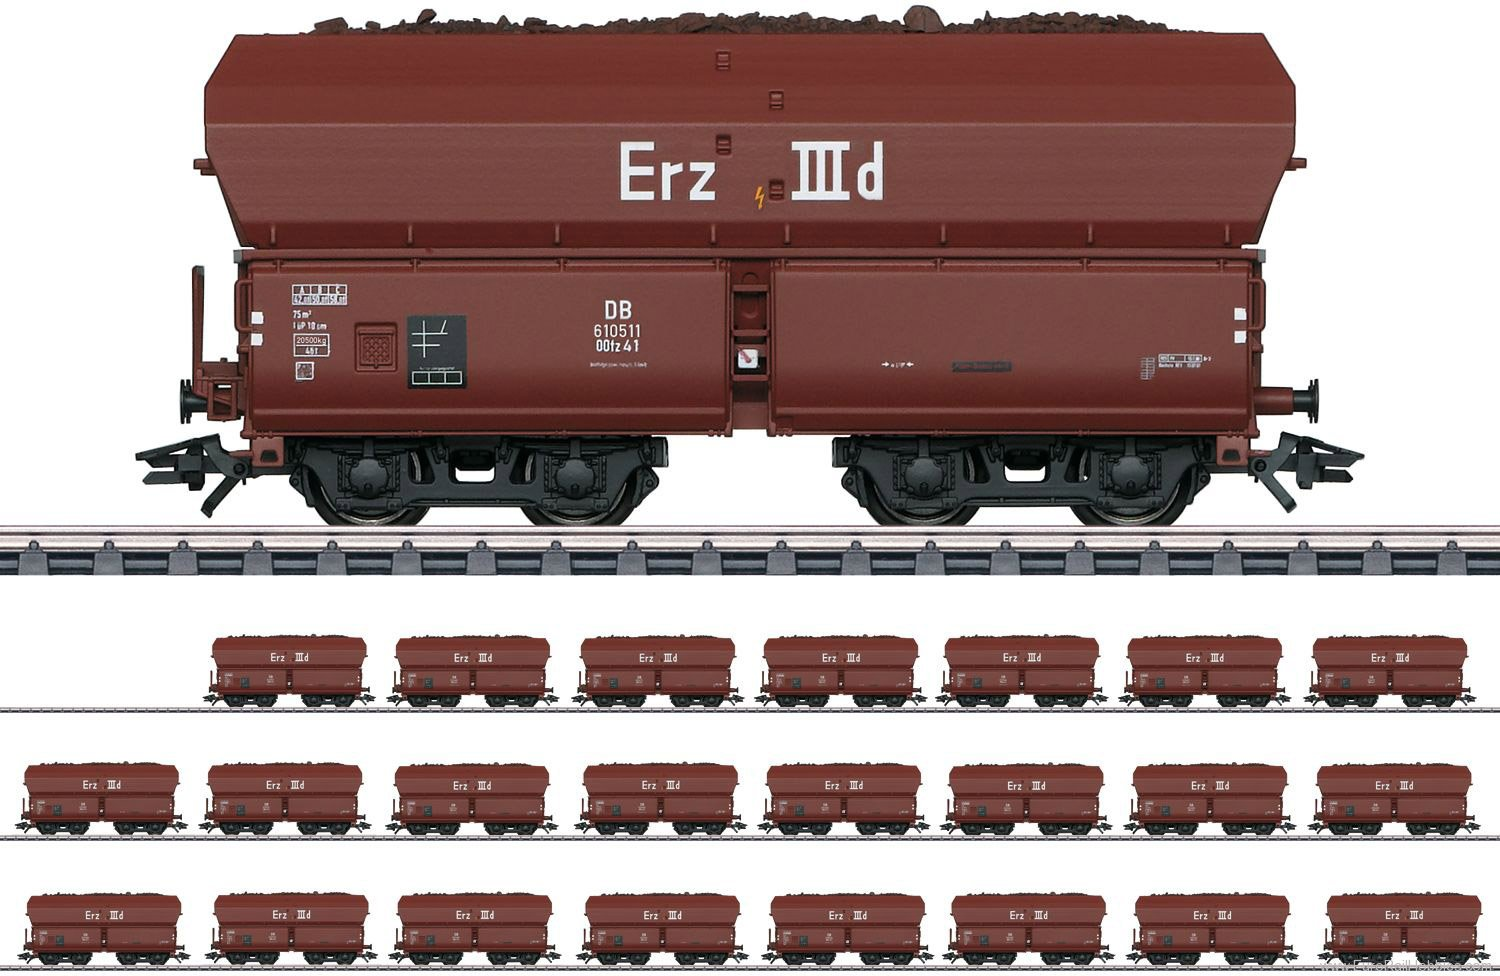 Marklin 46210 DB Type Erz IIId Hopper Car Display (24 Cars)